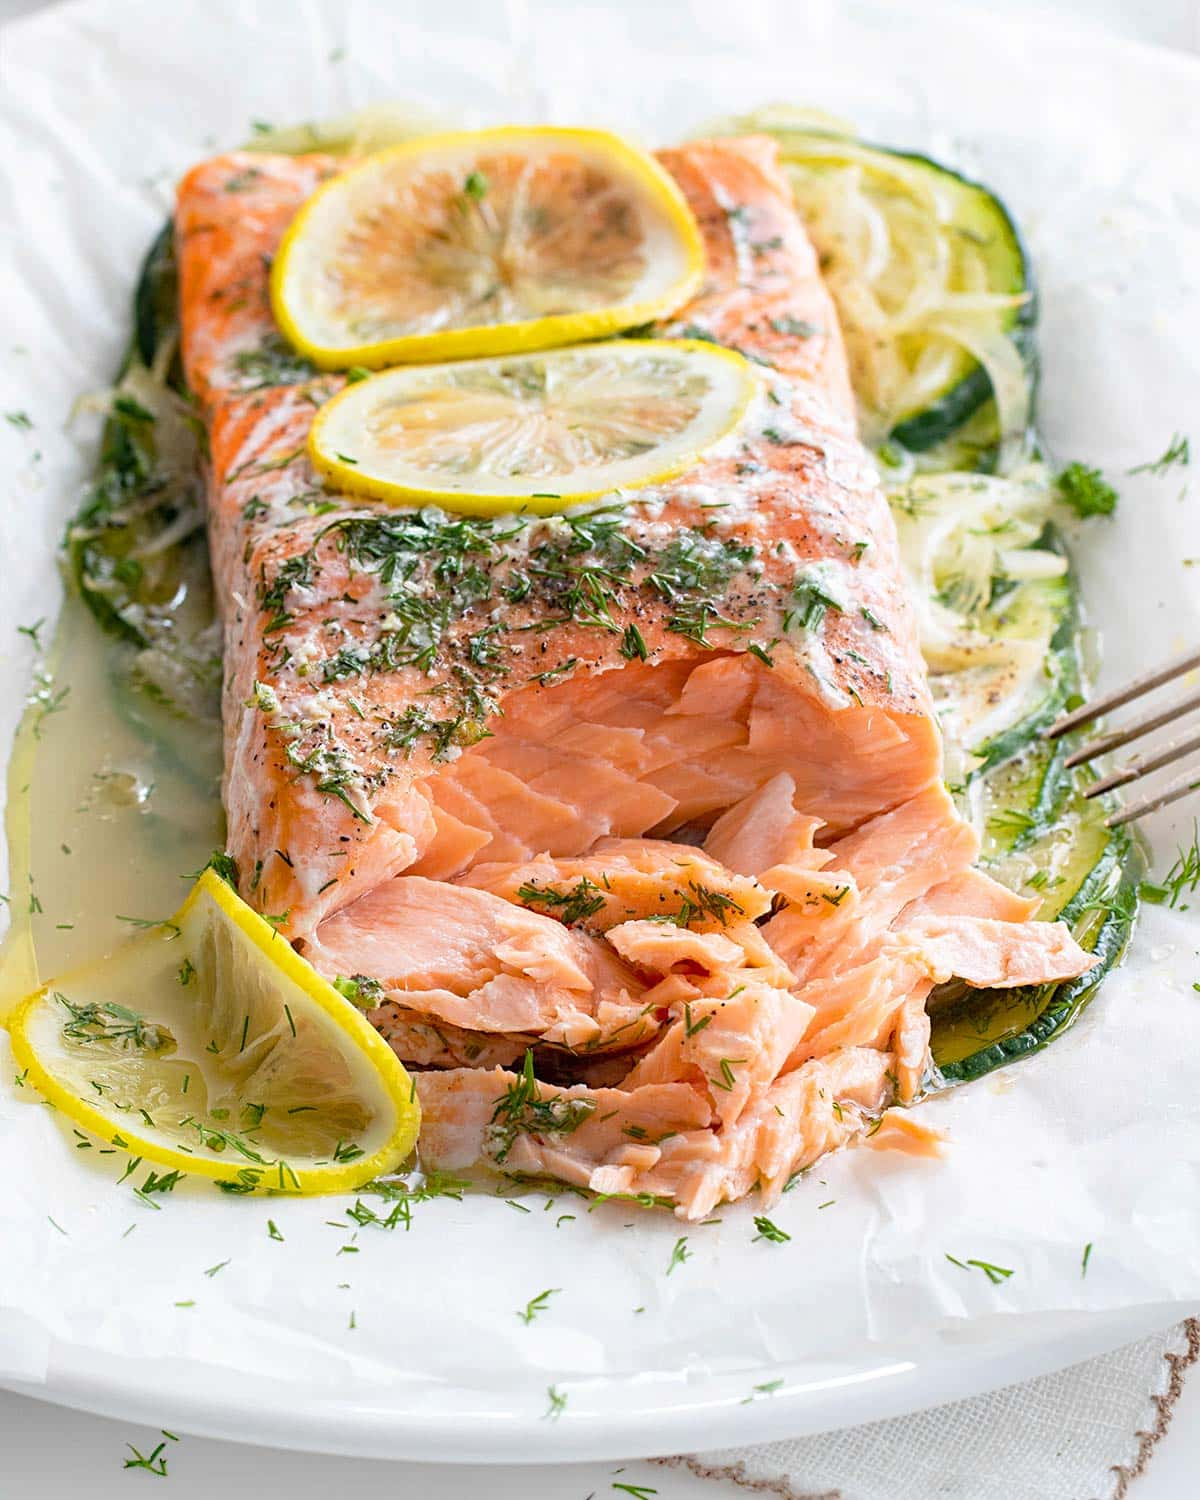 salmon en papillote on a plate flaked with a fork.